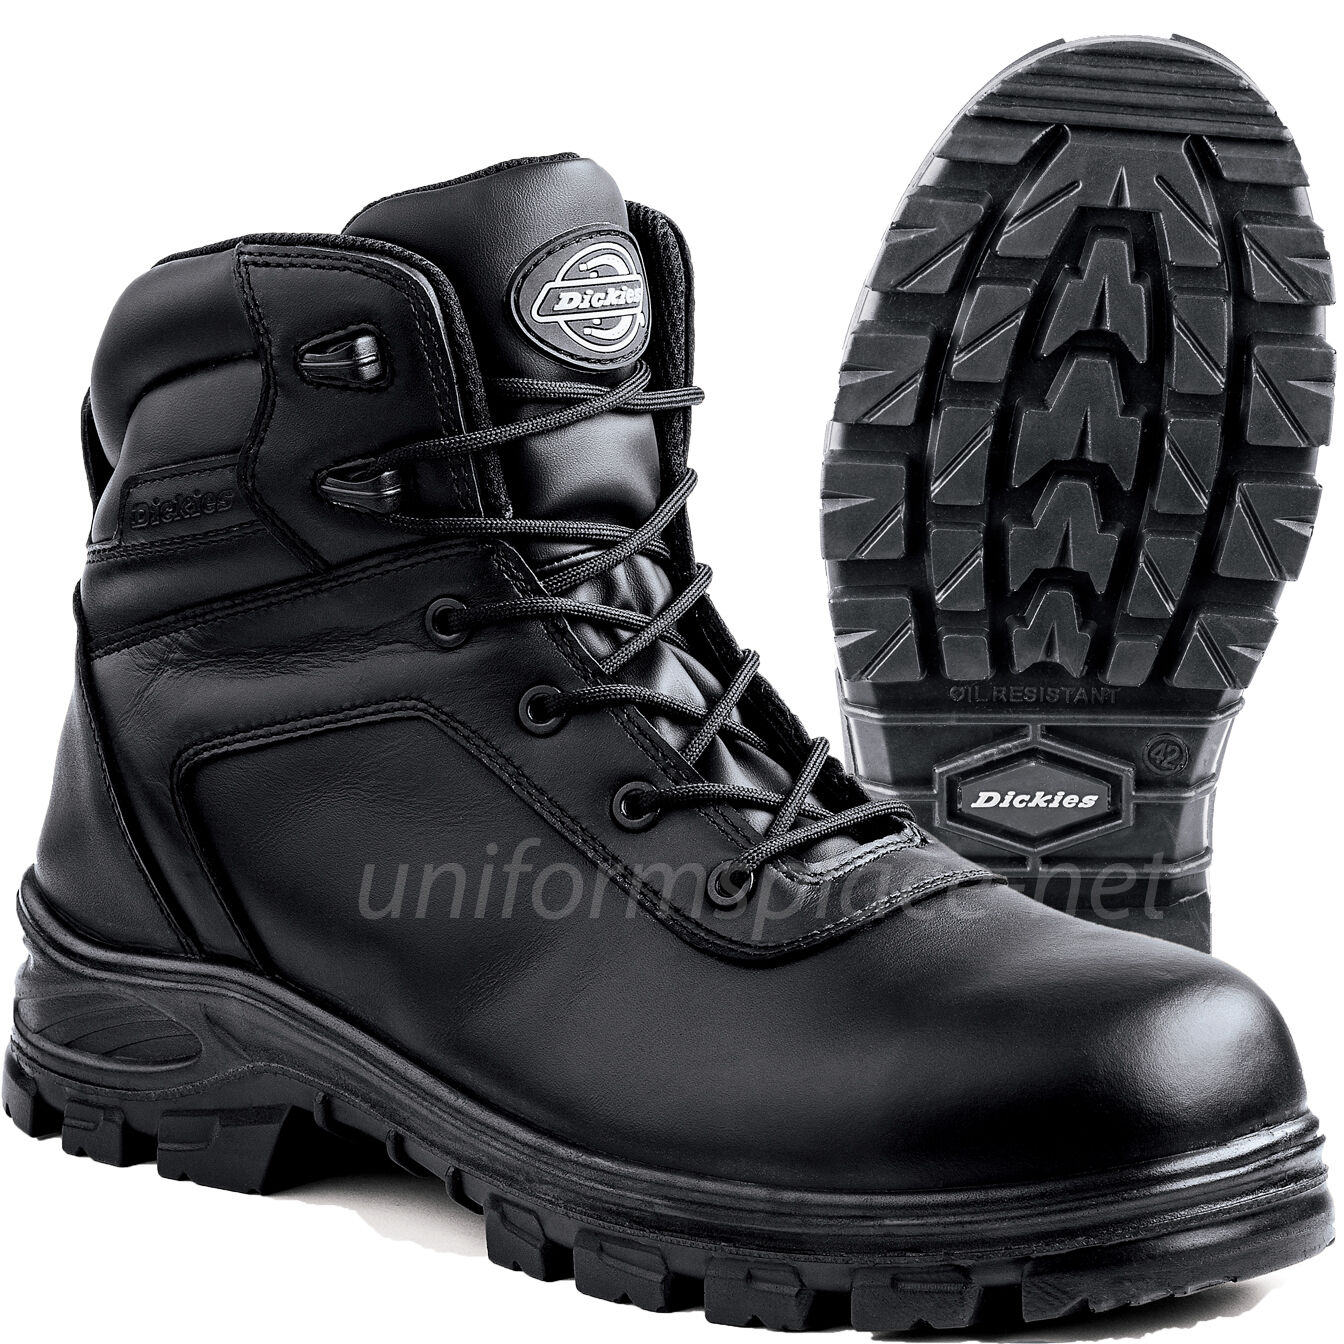 Dickies Work Stivali Uomo Lance Composite Safety Safety Safety Toe Pelle Work Boot DW6335 e1a95c